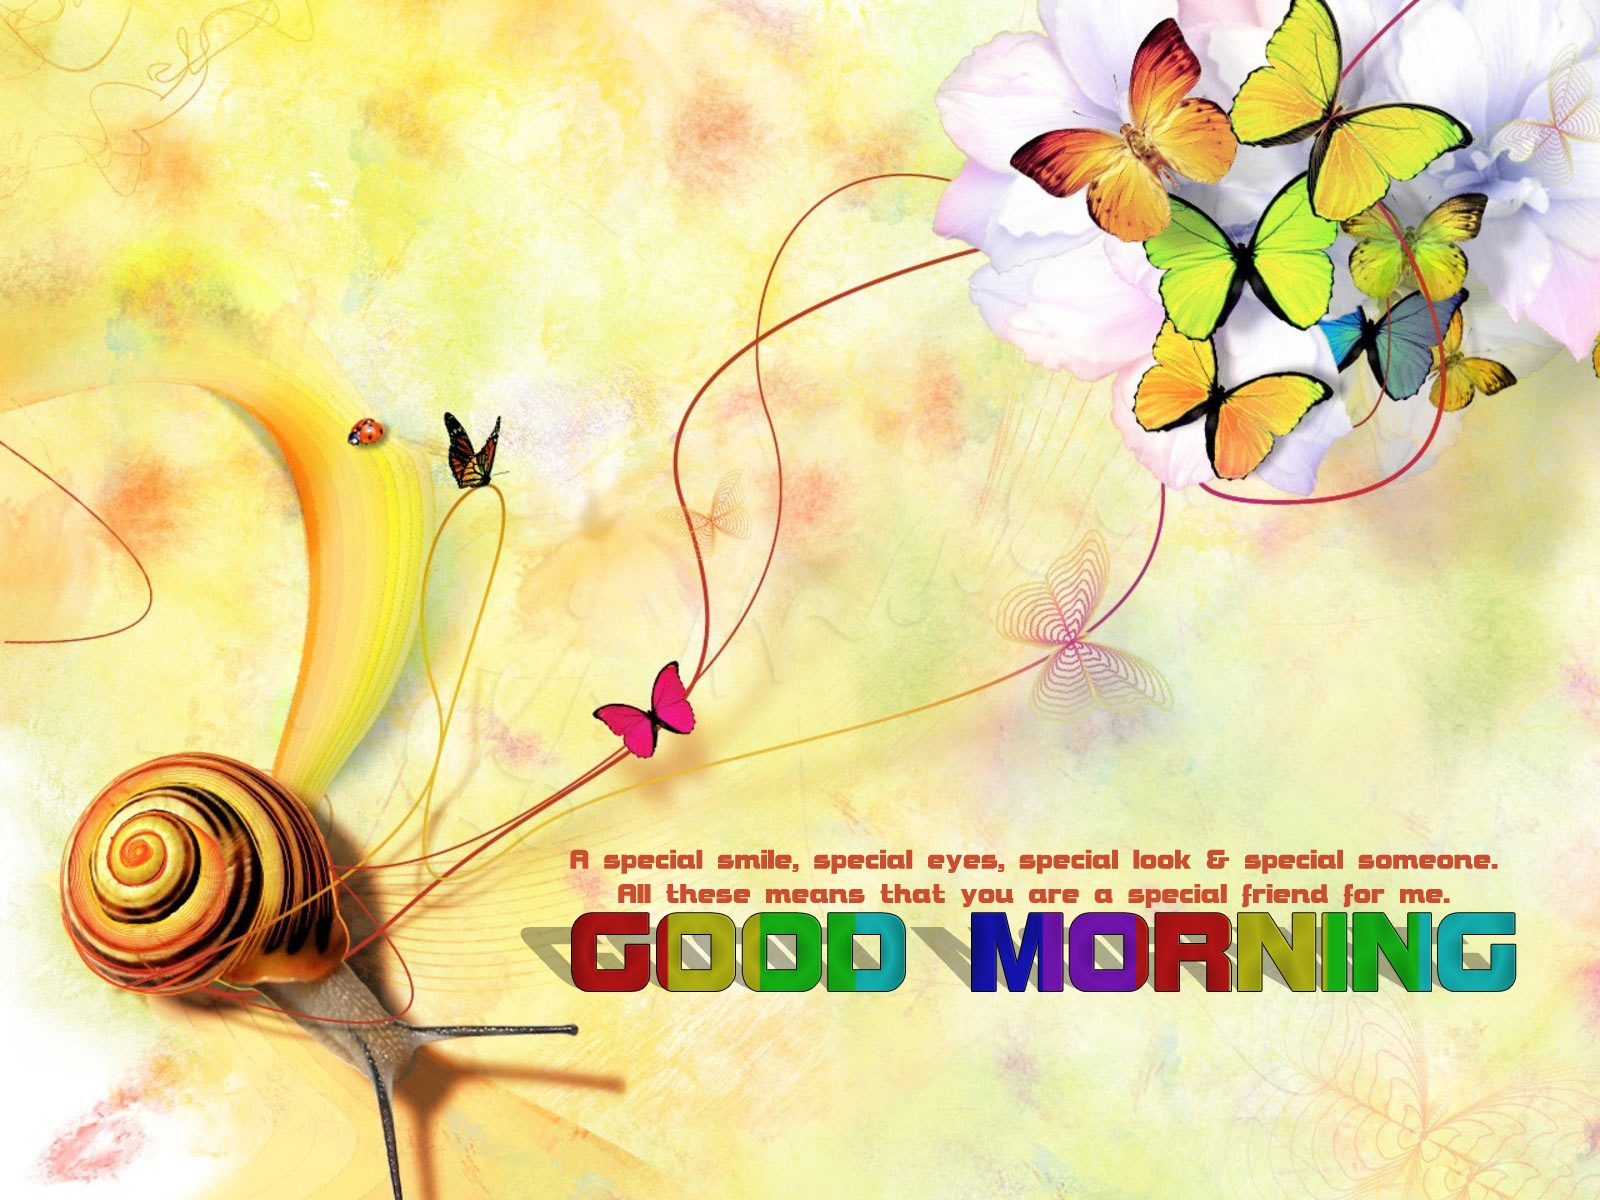 Good Morning Quotes For Someone Special: Good Morning With A Special Smile, Special Eyes, Special